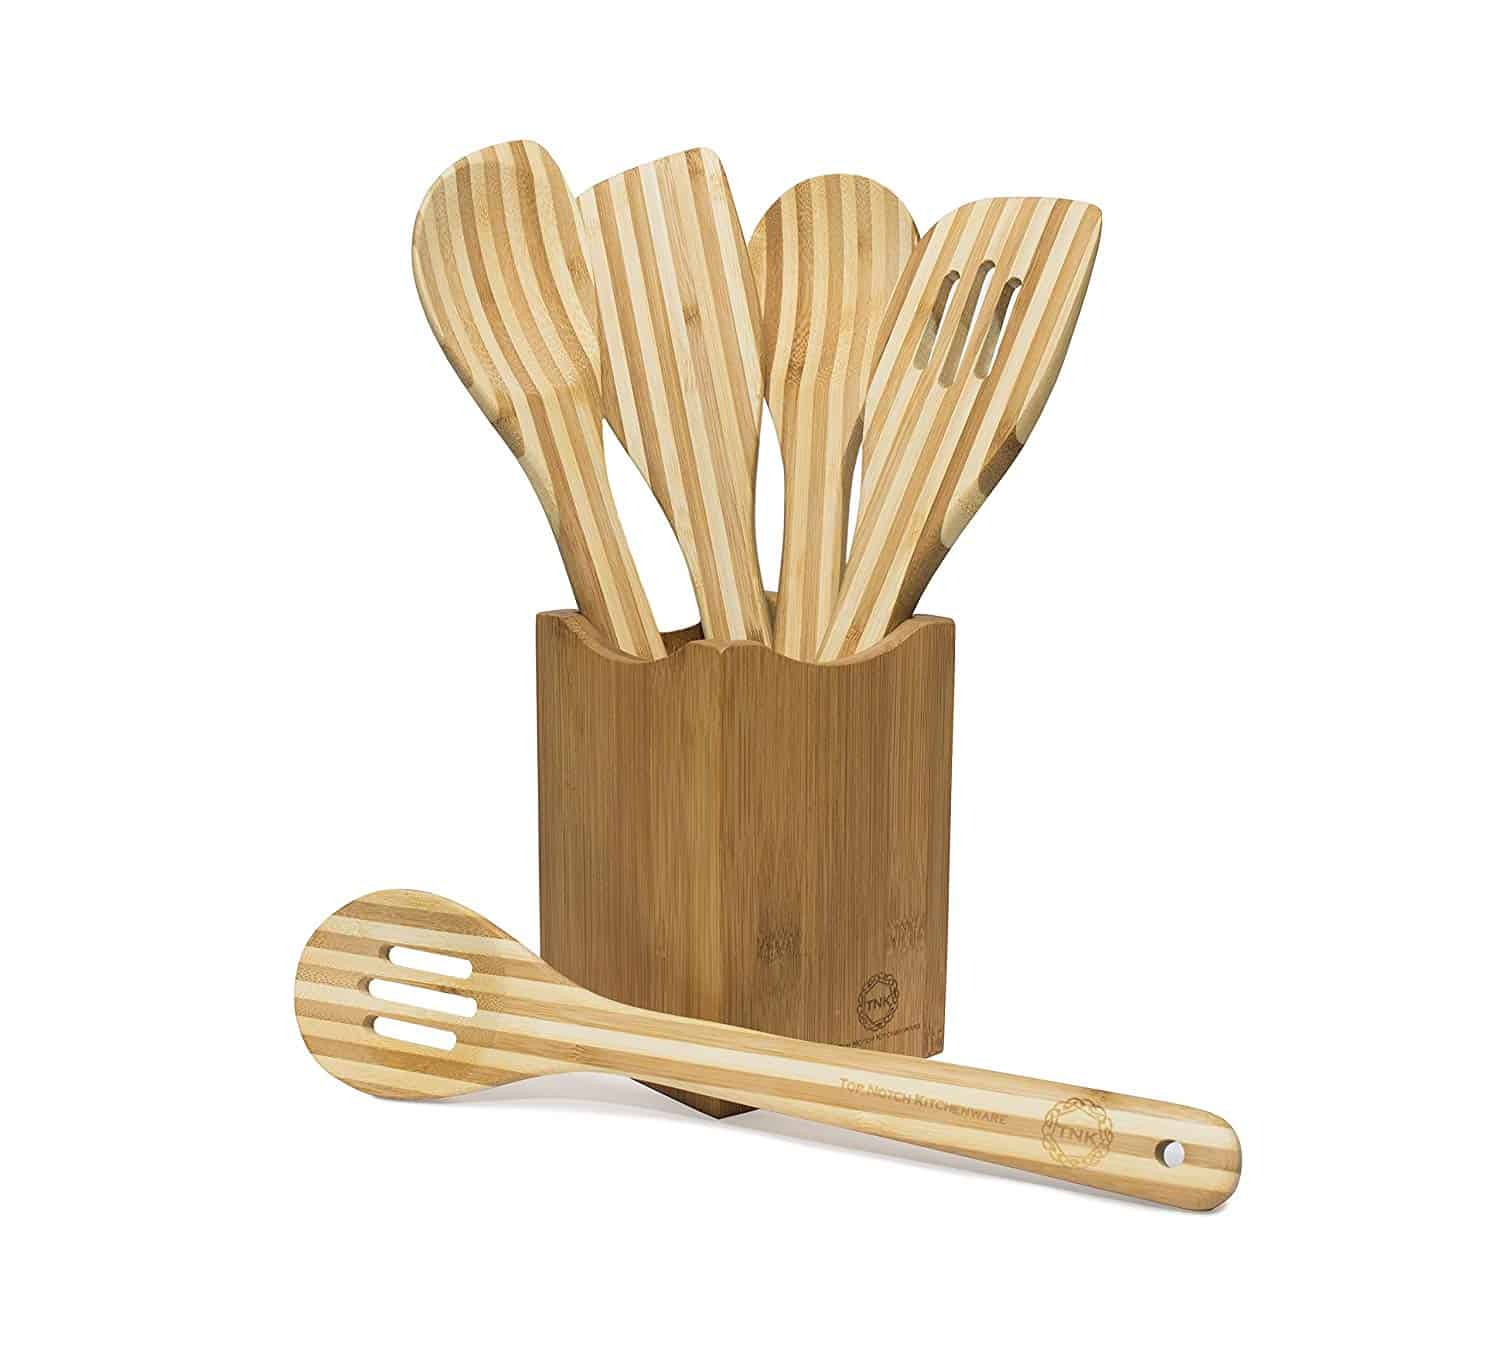 Bamboo Holder With 5 Piece Utensil Set